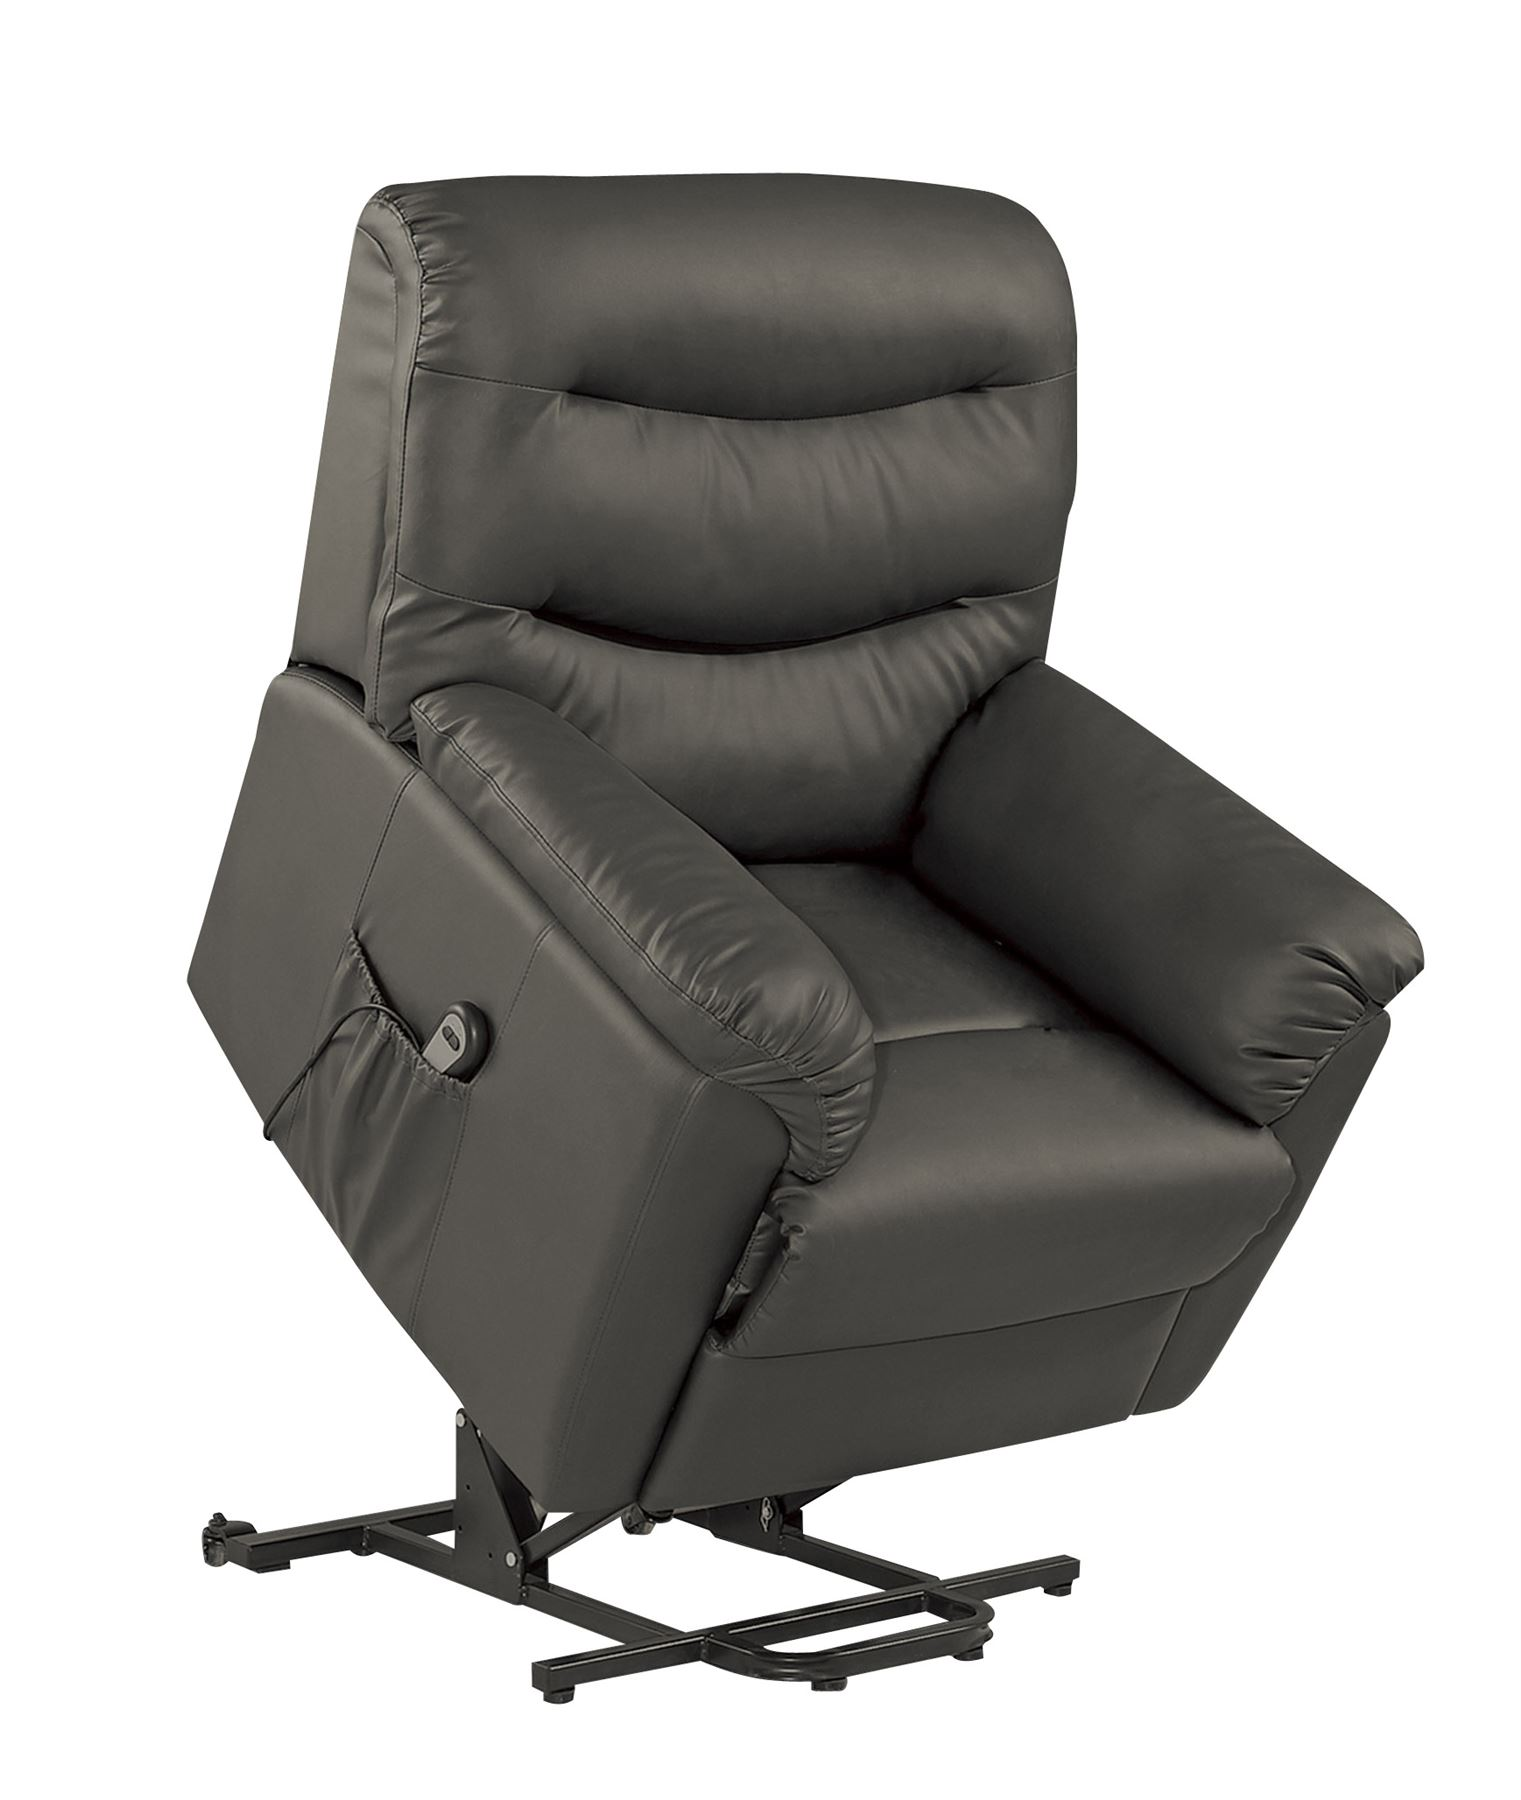 Birlea Regency Lift  Rise Electric Recliner Chair Upholstered Black Faux Leather